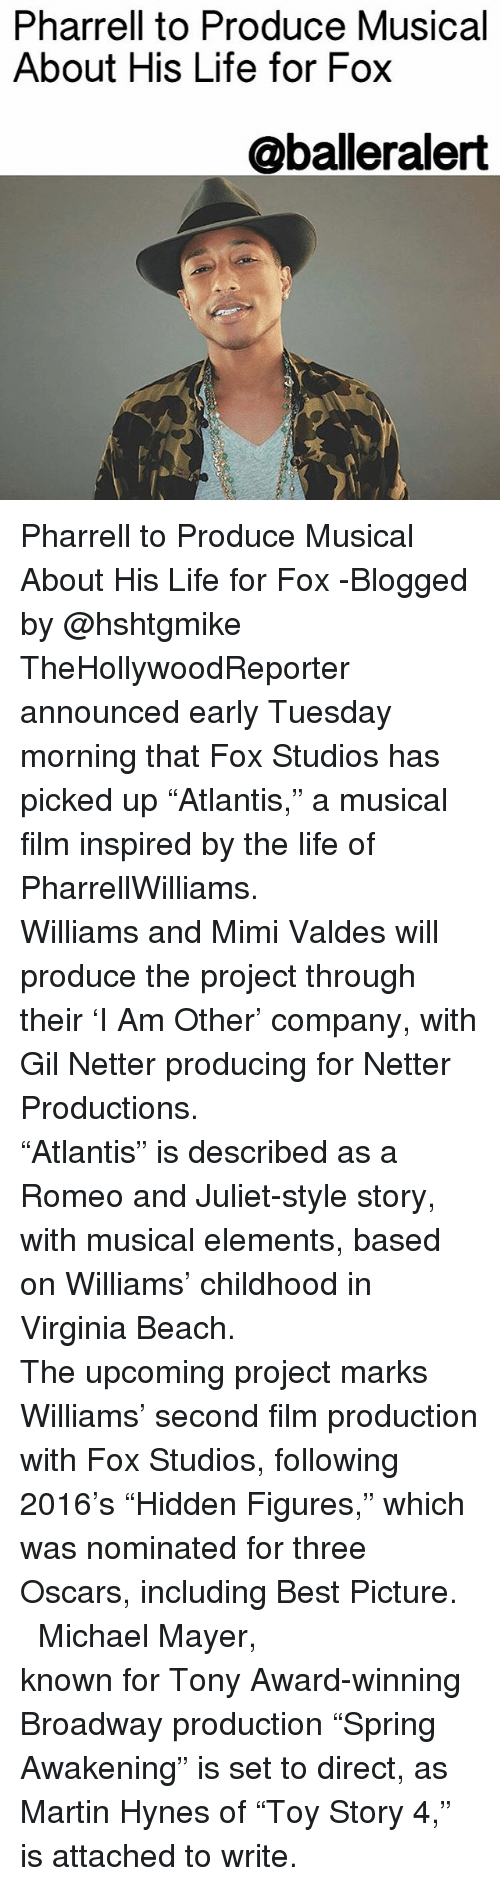 """virginia beach: Pharrell to Produce Musical  About His Life for Fox  @baller alert Pharrell to Produce Musical About His Life for Fox -Blogged by @hshtgmike ⠀⠀⠀⠀⠀⠀⠀⠀⠀ ⠀⠀⠀⠀⠀⠀⠀⠀⠀ TheHollywoodReporter announced early Tuesday morning that Fox Studios has picked up """"Atlantis,"""" a musical film inspired by the life of PharrellWilliams. ⠀⠀⠀⠀⠀⠀⠀⠀⠀ ⠀⠀⠀⠀⠀⠀⠀⠀⠀ Williams and Mimi Valdes will produce the project through their 'I Am Other' company, with Gil Netter producing for Netter Productions. ⠀⠀⠀⠀⠀⠀⠀⠀⠀ ⠀⠀⠀⠀⠀⠀⠀⠀⠀ """"Atlantis"""" is described as a Romeo and Juliet-style story, with musical elements, based on Williams' childhood in Virginia Beach. ⠀⠀⠀⠀⠀⠀⠀⠀⠀ ⠀⠀⠀⠀⠀⠀⠀⠀⠀ The upcoming project marks Williams' second film production with Fox Studios, following 2016's """"Hidden Figures,"""" which was nominated for three Oscars, including Best Picture. ⠀⠀⠀⠀⠀⠀⠀⠀⠀ ⠀⠀⠀⠀⠀⠀⠀⠀⠀ Michael Mayer, known for Tony Award-winning Broadway production """"Spring Awakening"""" is set to direct, as Martin Hynes of """"Toy Story 4,"""" is attached to write."""